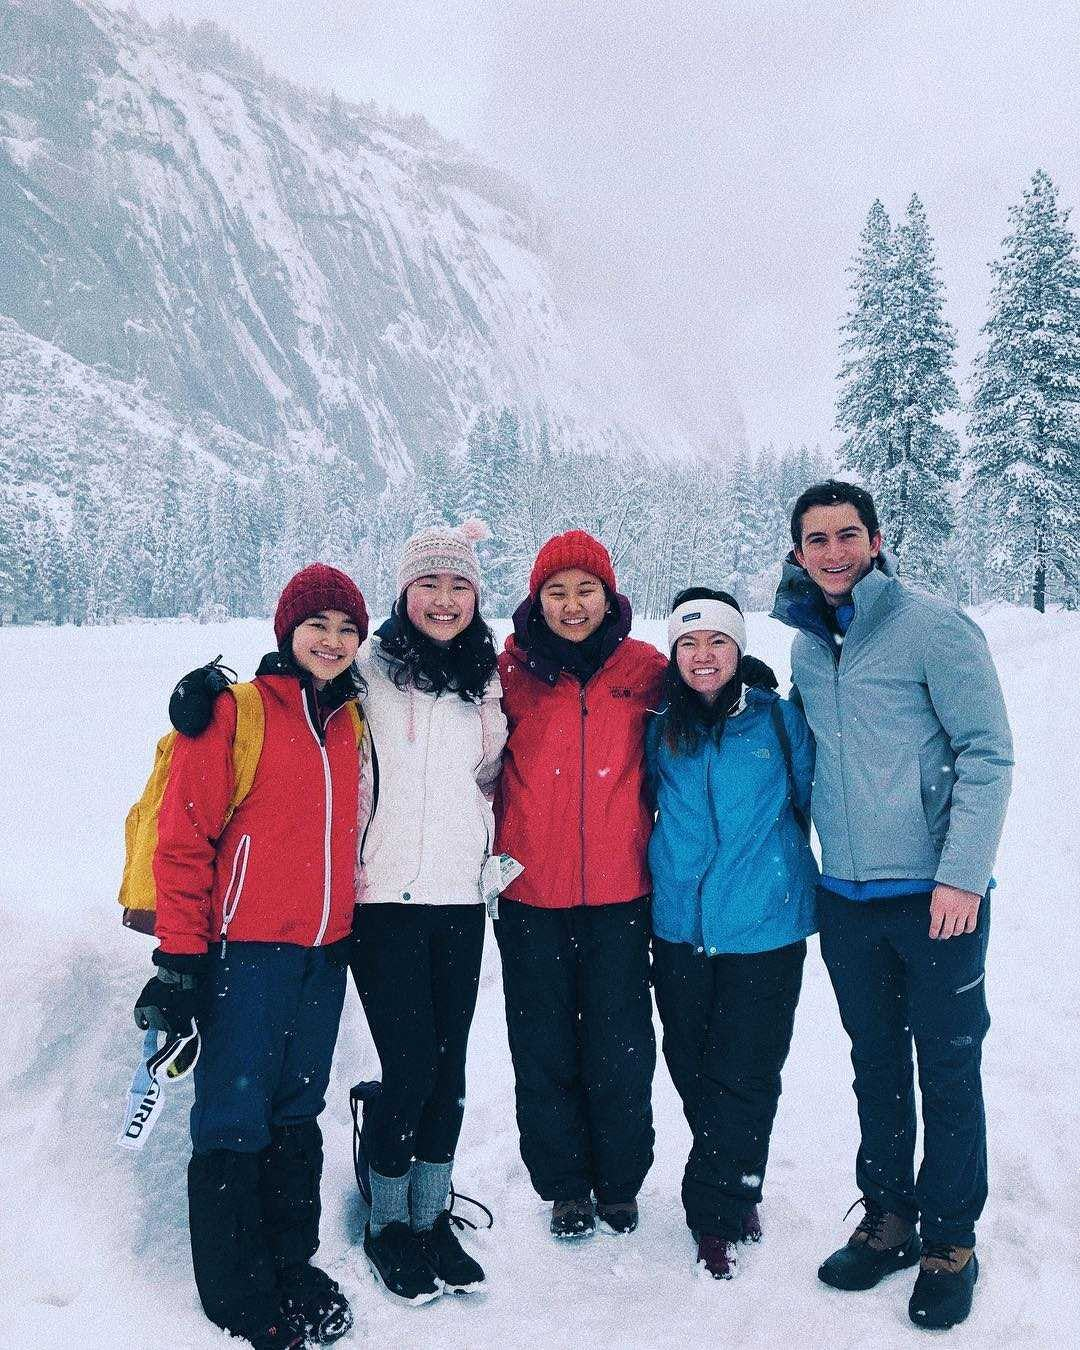 Yosemite with some pals